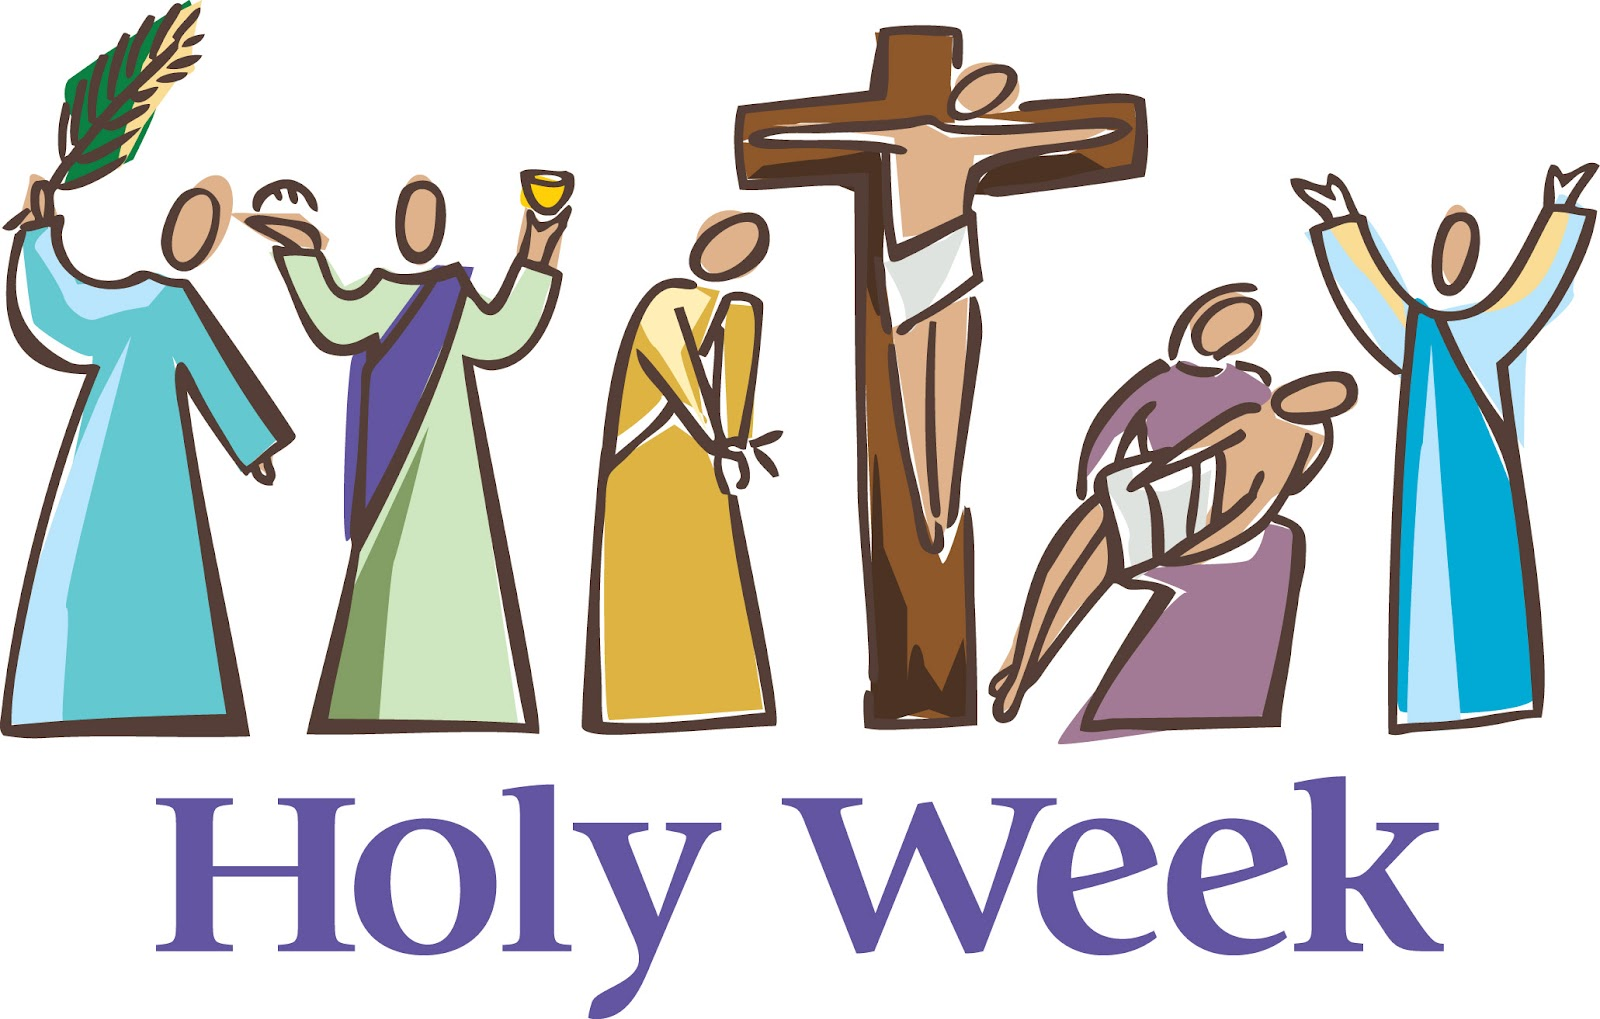 2018 clipart holy week. Look at clip art